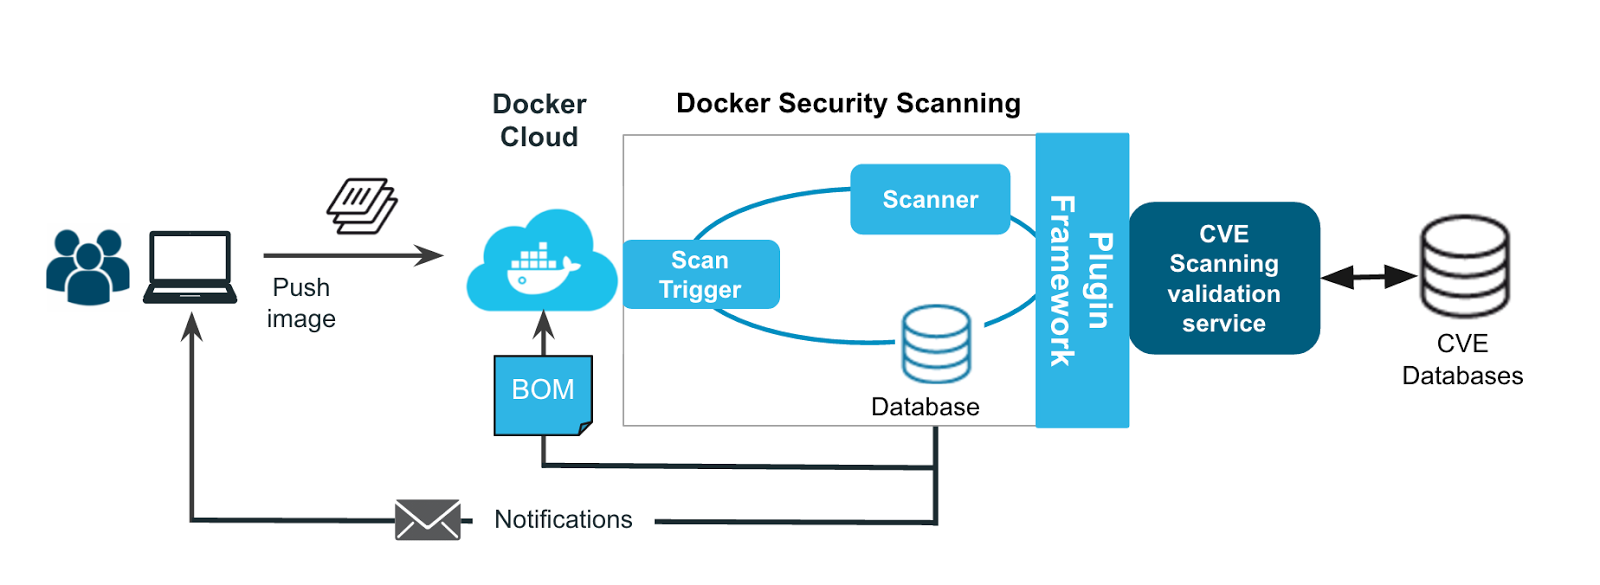 专注docker安全:Security Scanning专注docker安全:Security Scanning